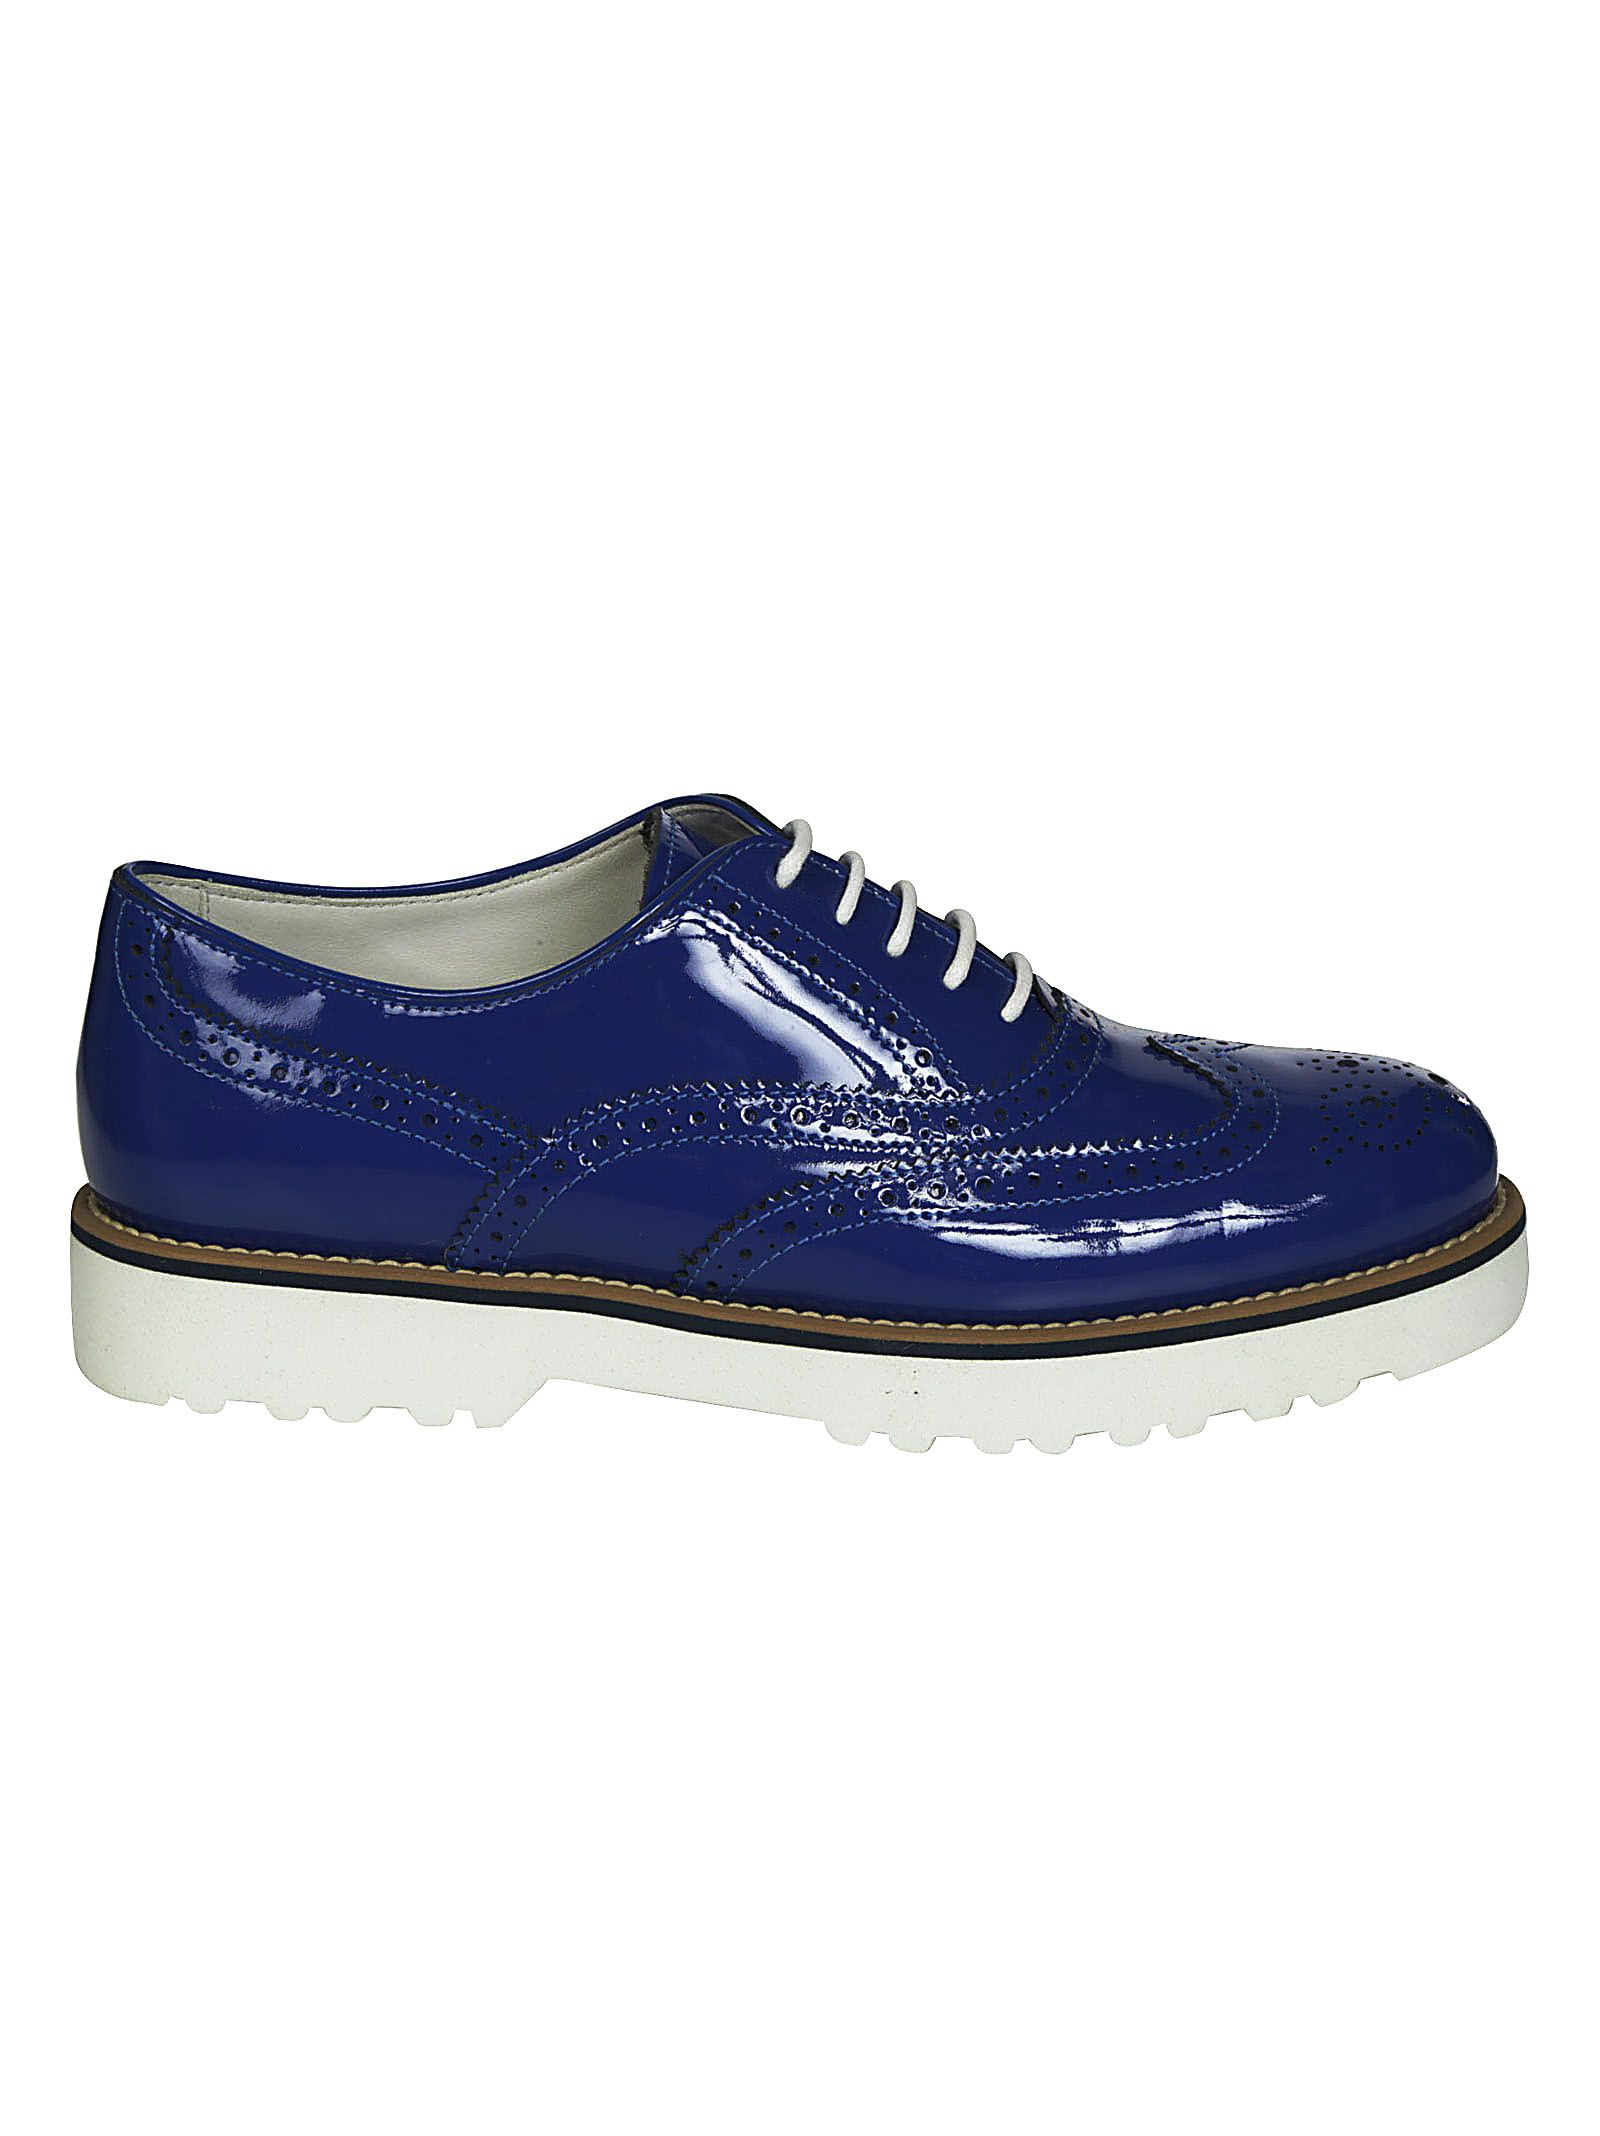 Hogan Lace-up Brogue Shoes